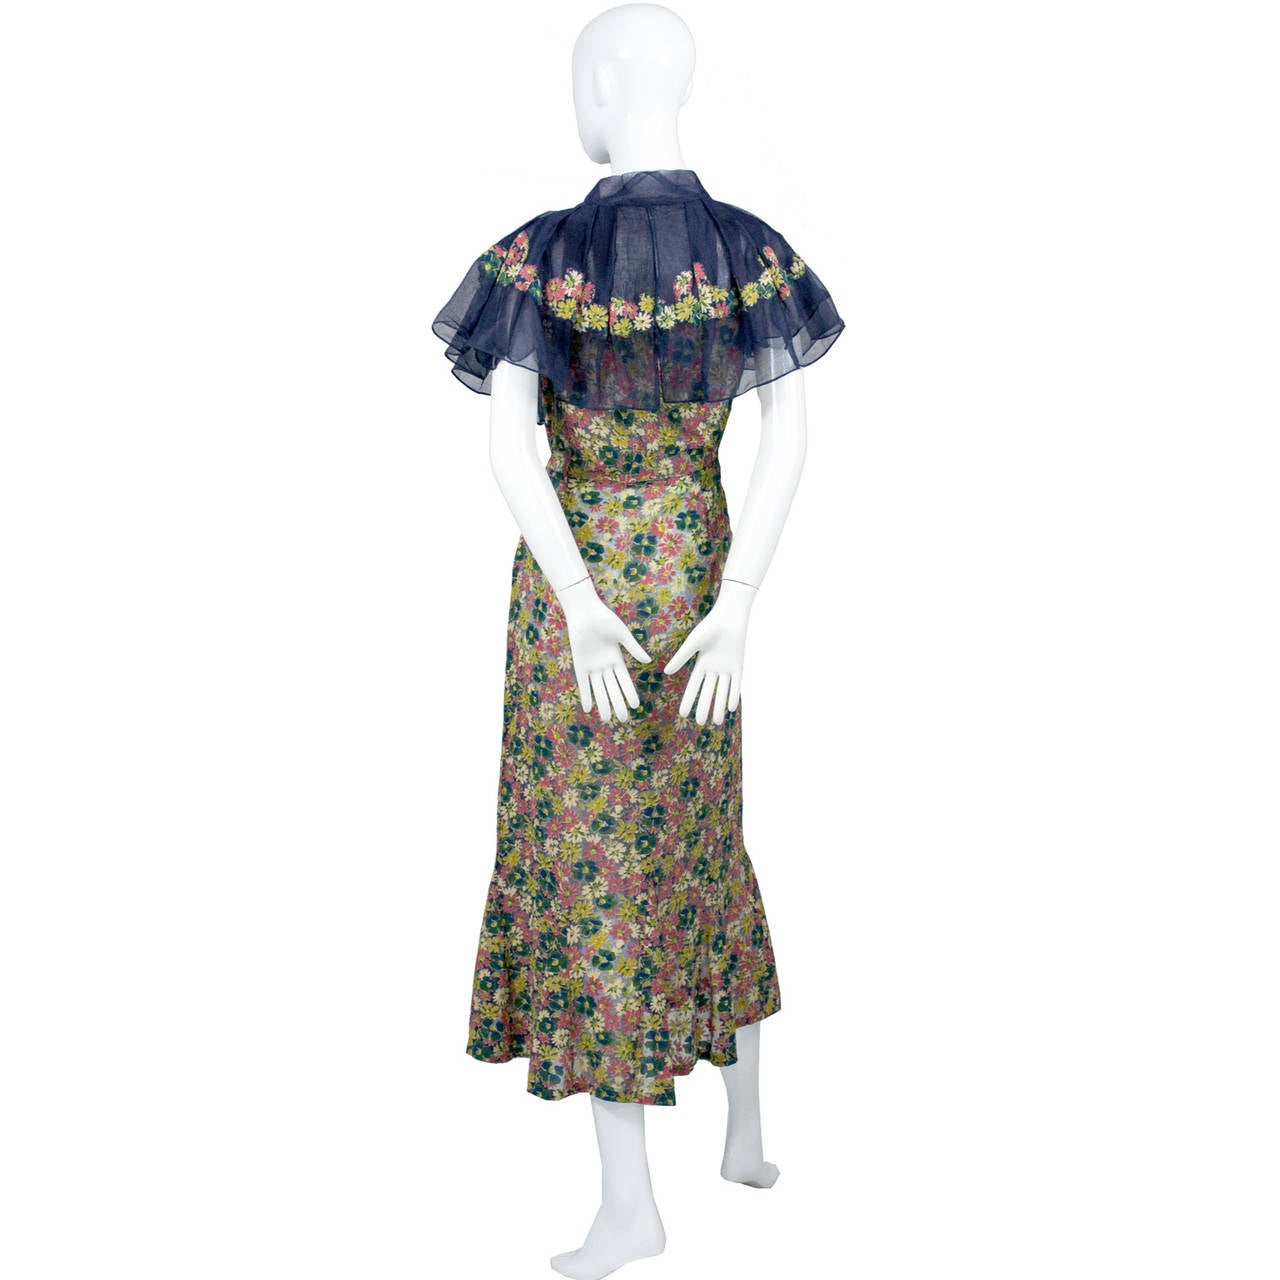 This beautiful Adaptation Chanel Paris 1930's vintage fine silk dress is a rare find! This dress wasn't created by Chanel but was an adaptation of her work.  Chanel gave out only a limited number of these licenses and was particular about to whom